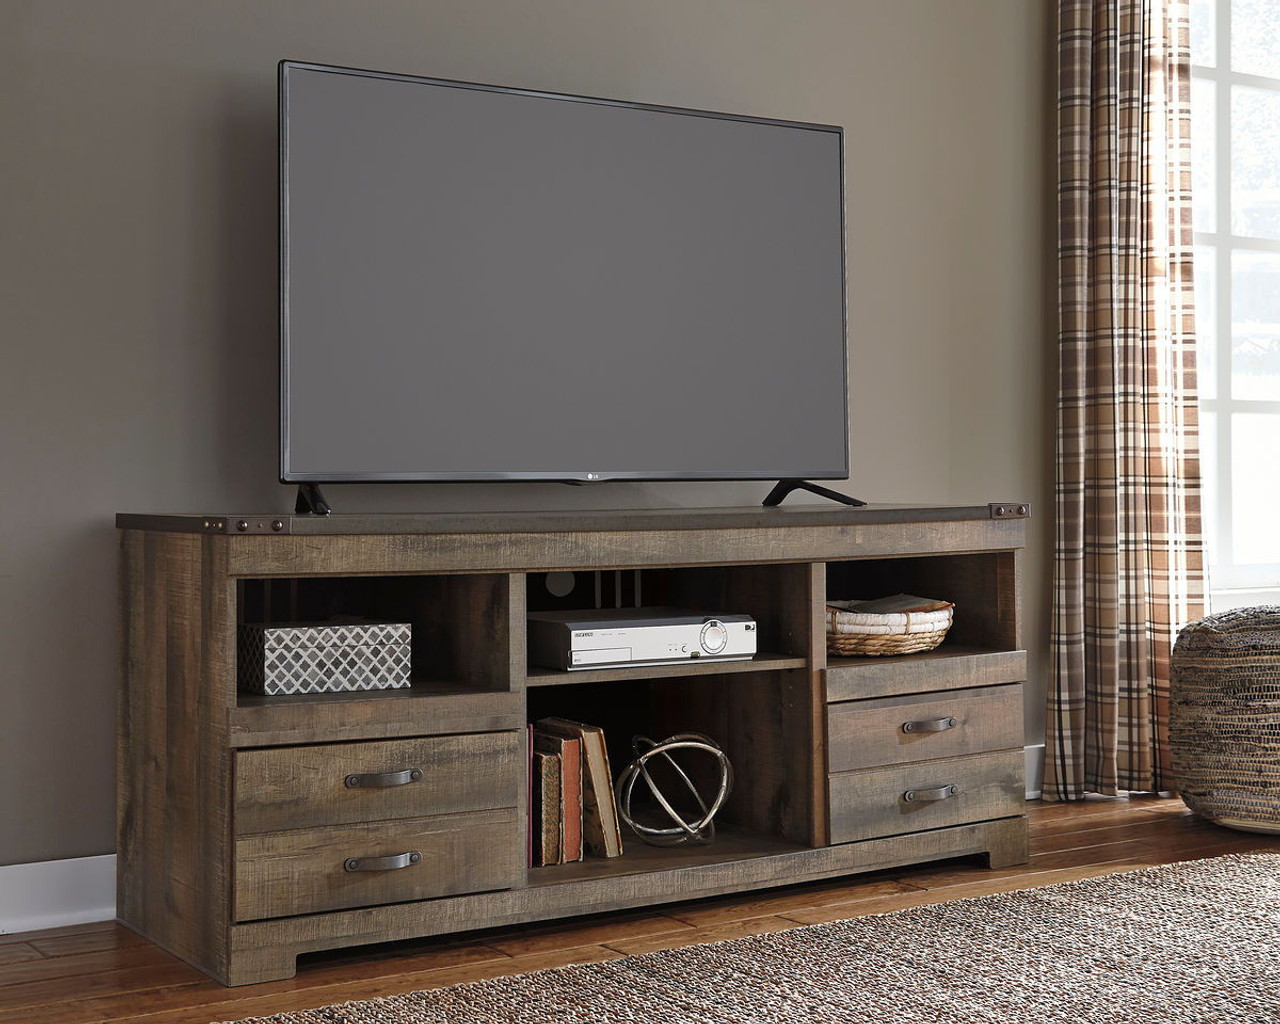 The Trinell Brown Lg Tv Stand W Fireplace Option Available At Jaxco